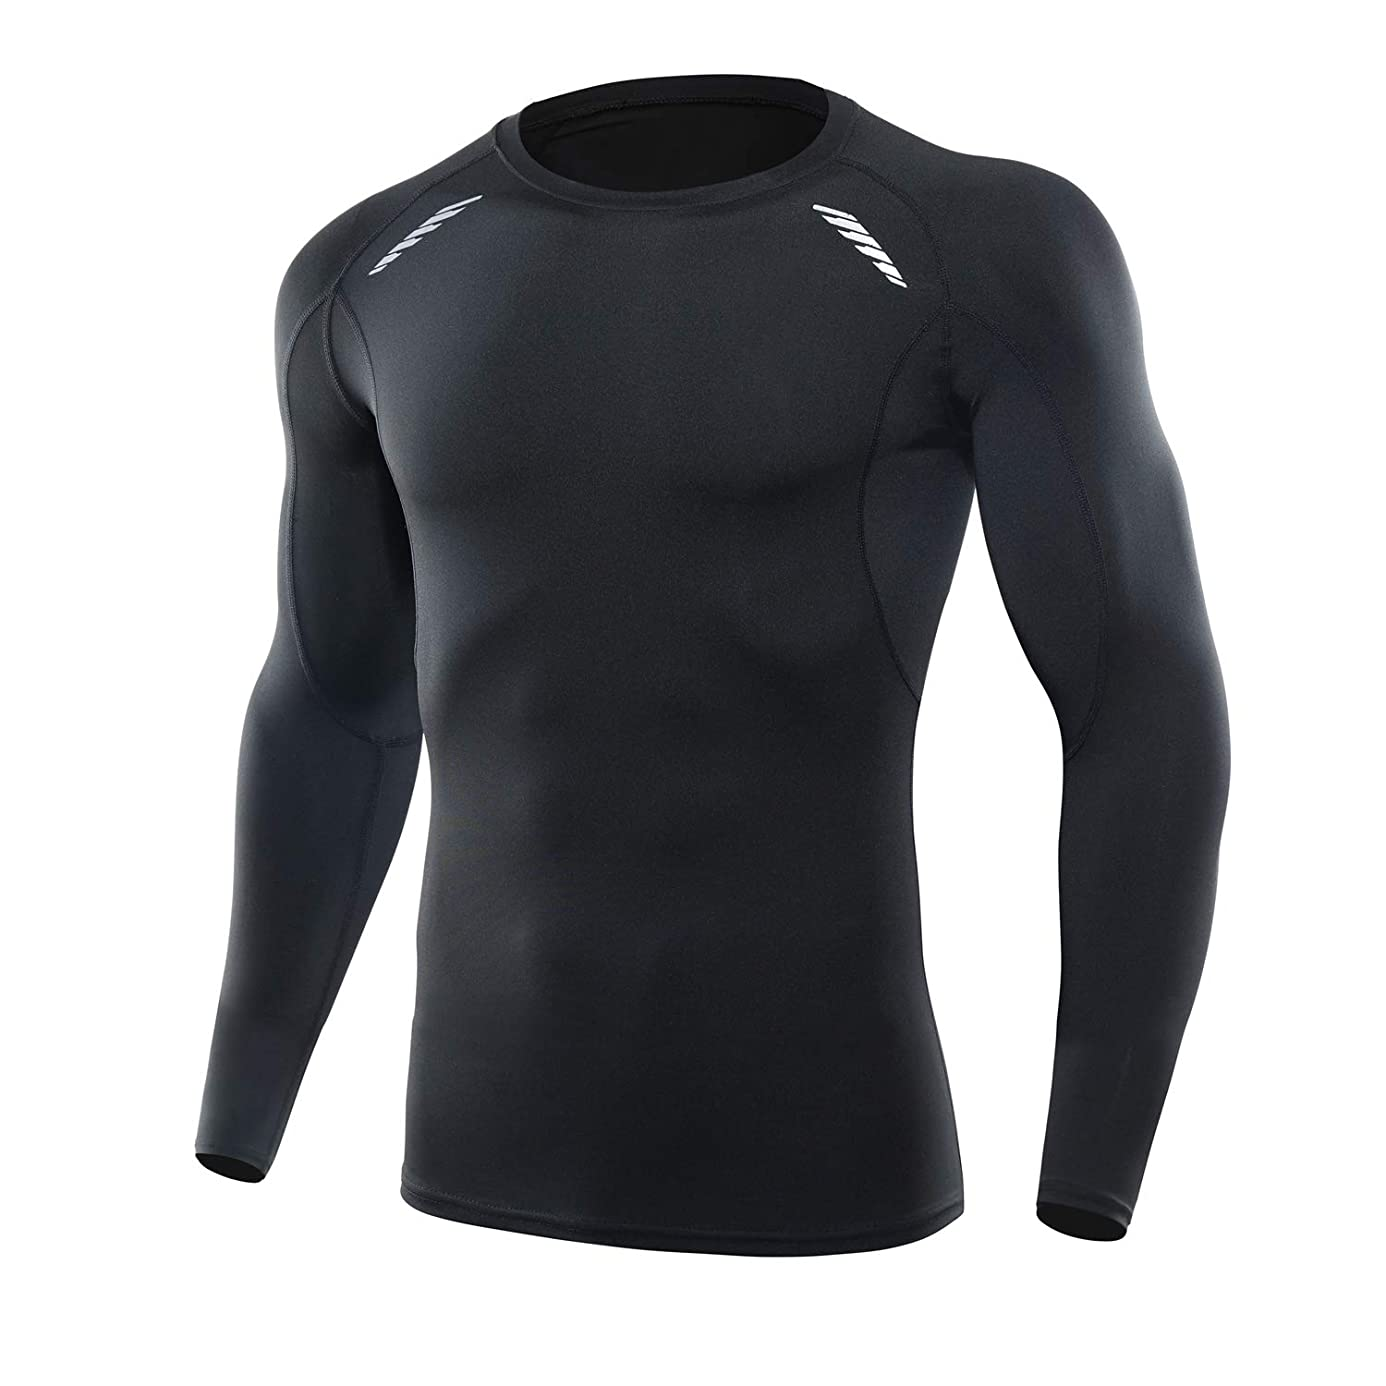 CAWANFLY Men's Compression Shirt Baselayer Short Sleeve Tops Cool Dry Skin Fit Athletic Workout T-Shirts